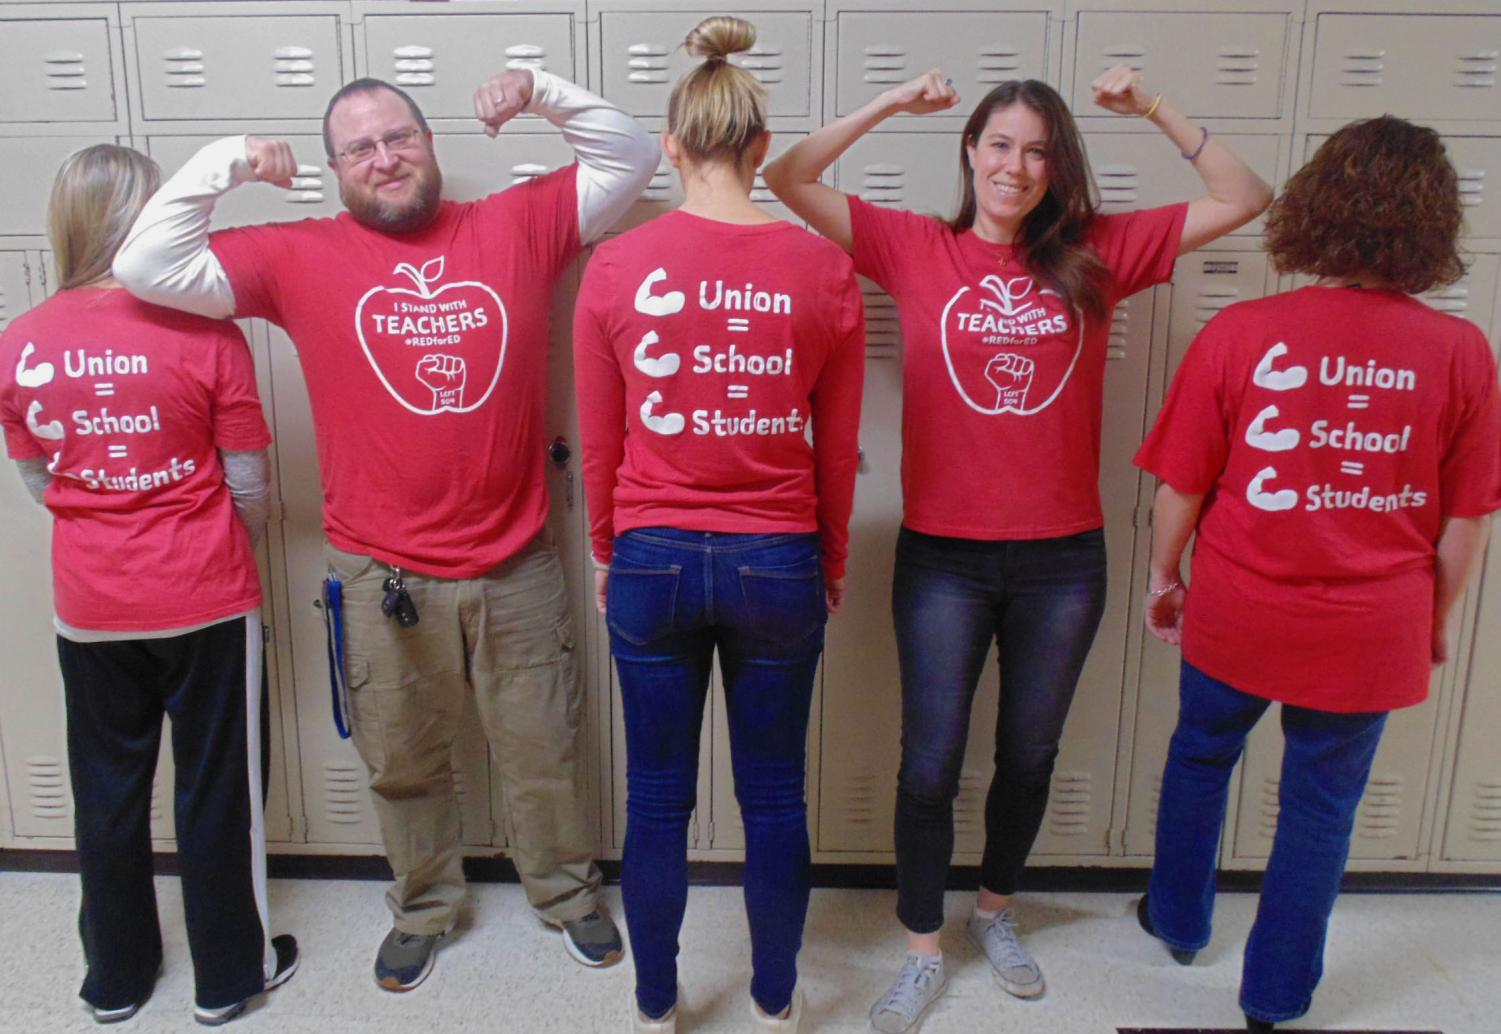 Ms. Dana Brady, the building representative of the teacher's union (and second from the right), poses with fellow teachers in their red shirts.